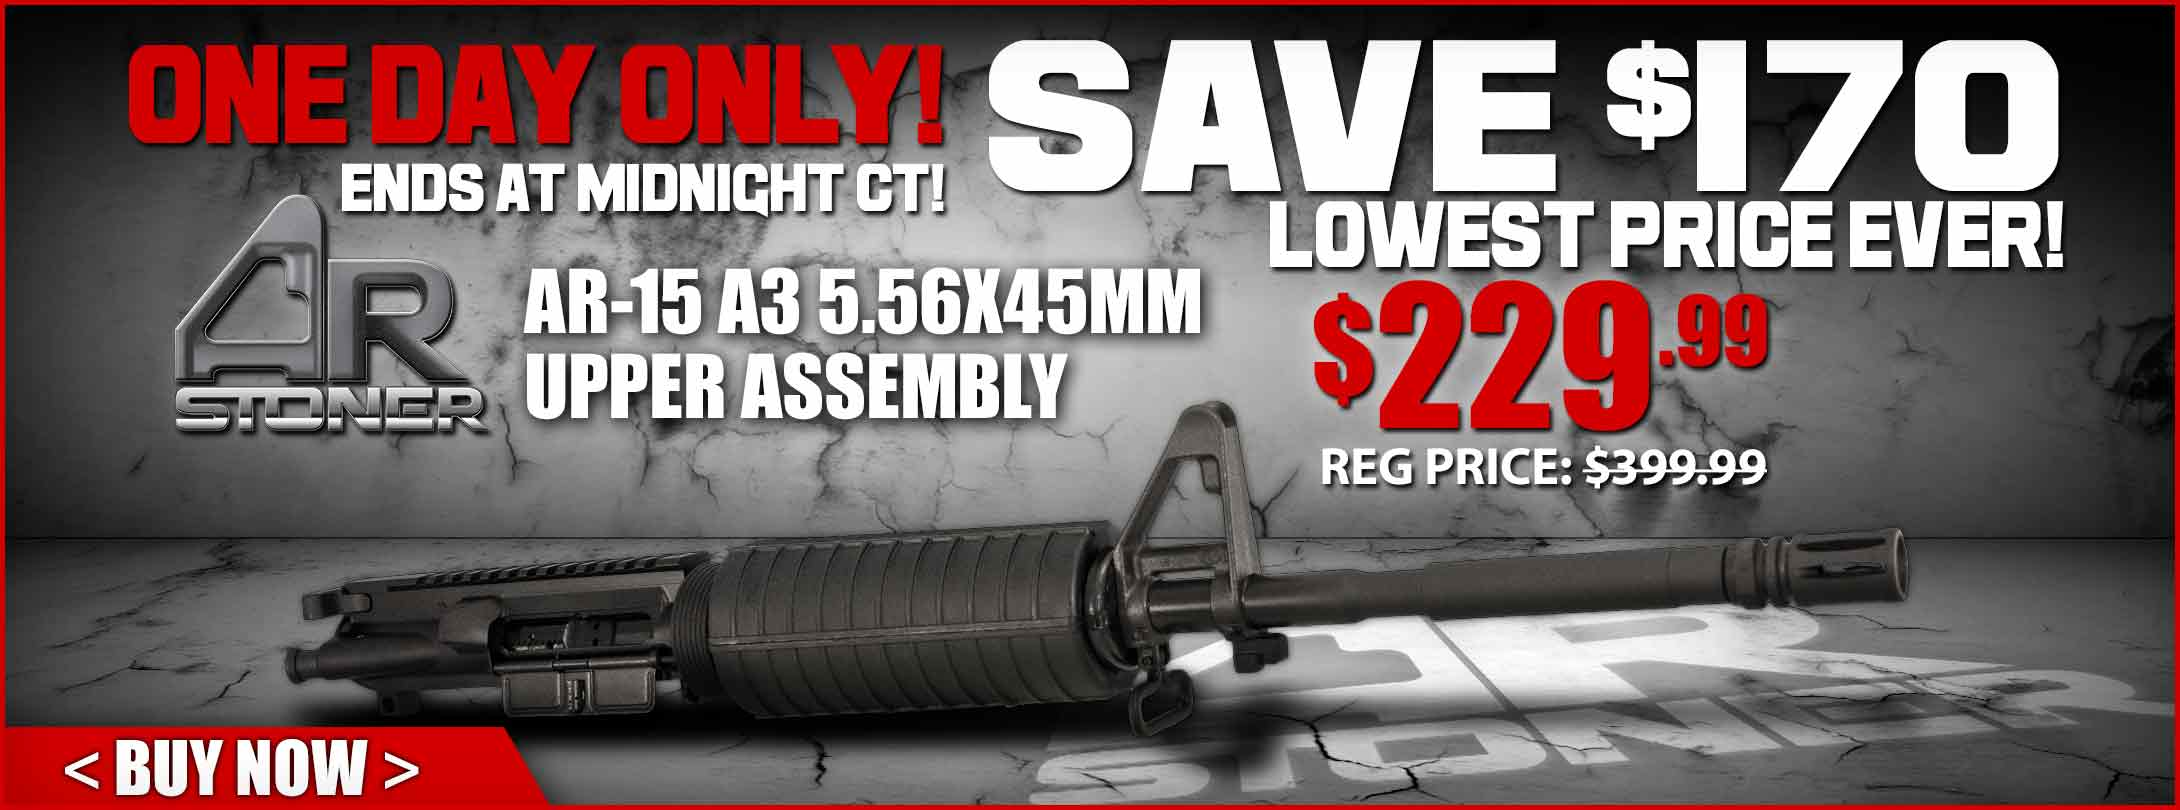 Lowest Price Ever! AR-Stoner Upper Assembly!